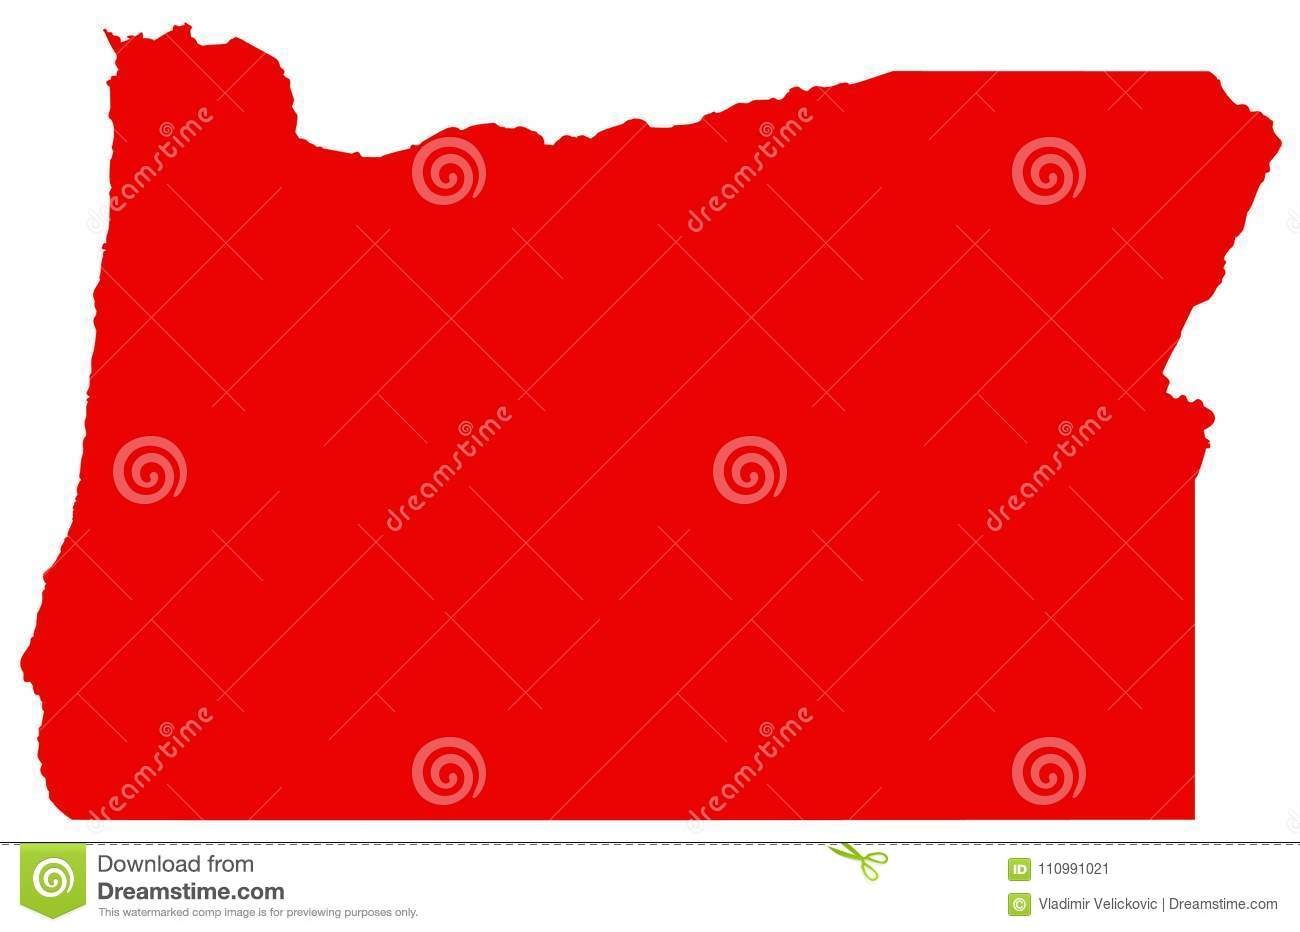 Oregon Map - State In The Pacific Northwest Region On The ...